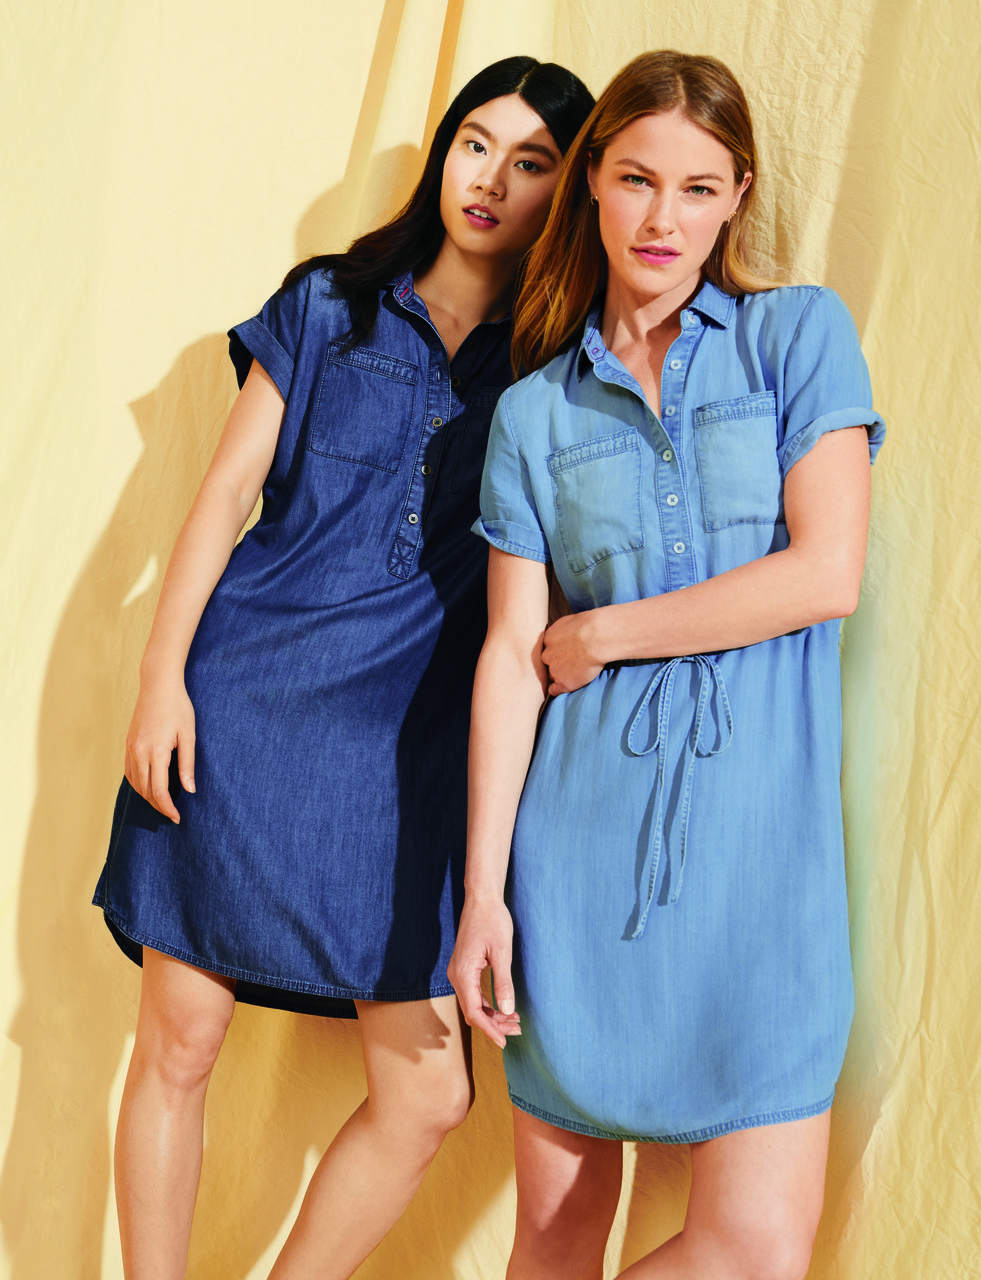 Two models wearing the dress in dark and light denim